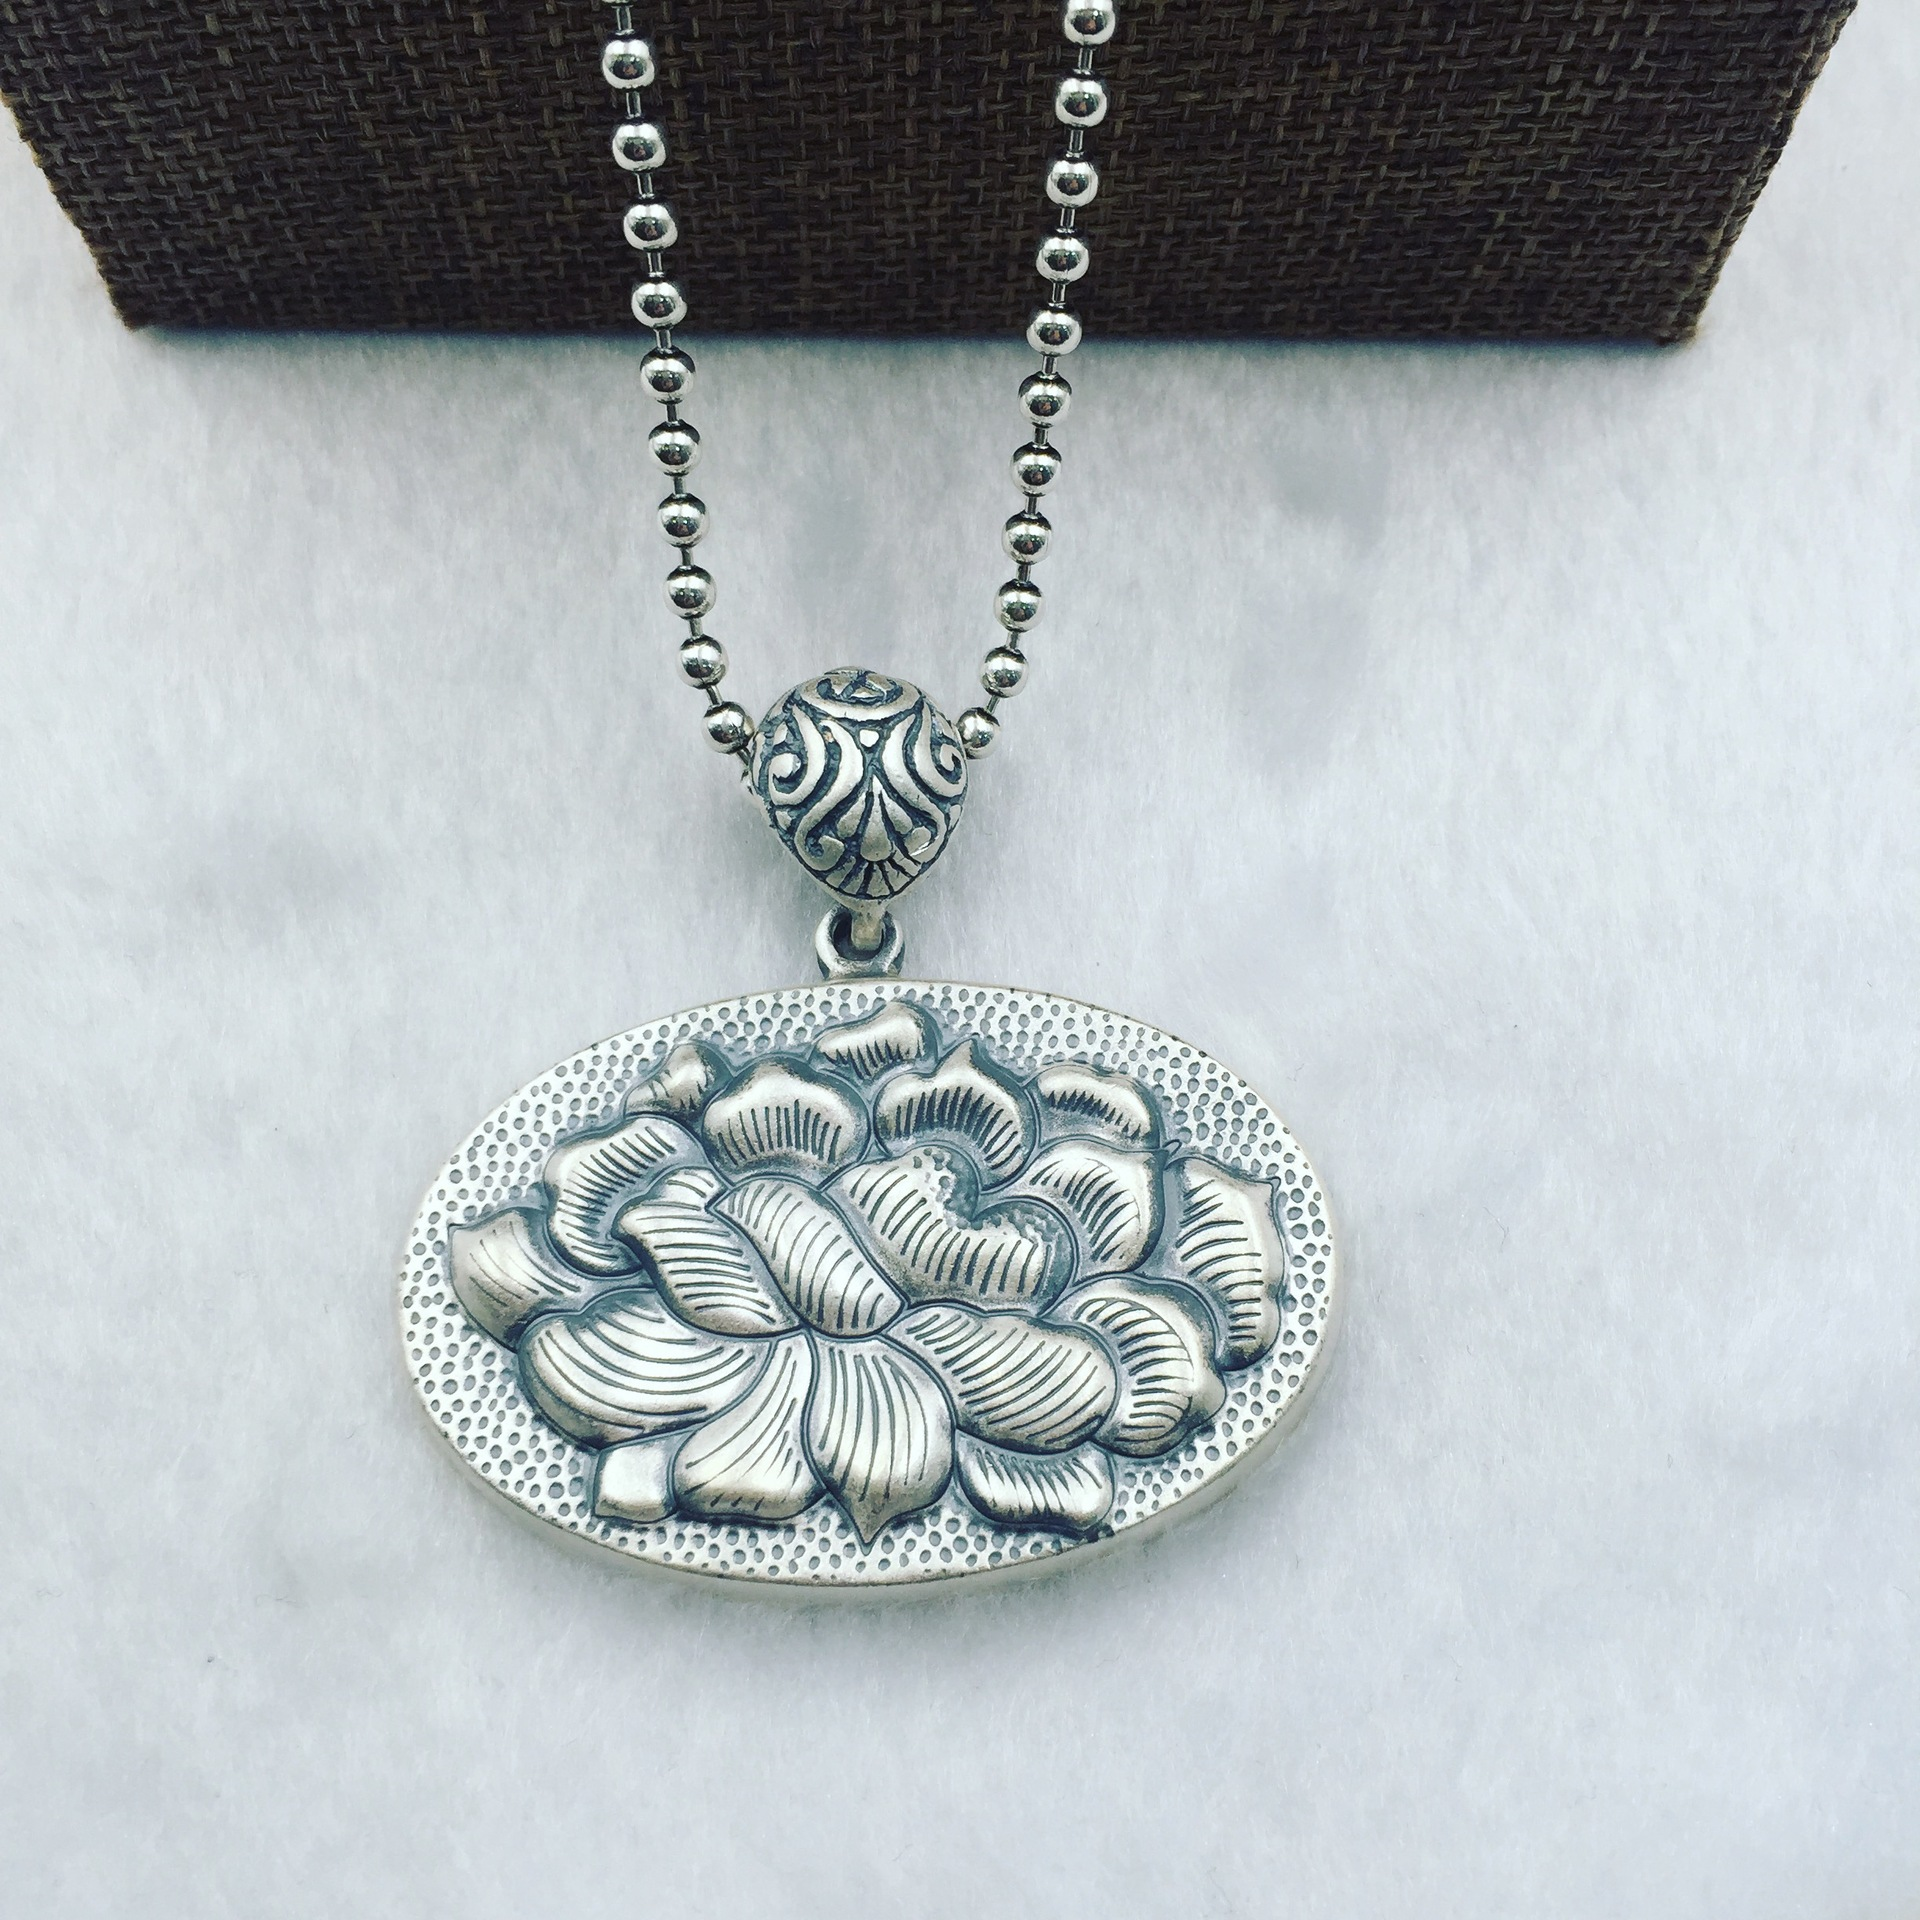 ancient Thai S925 pure silver intime big peony card STERLING SILVER ROUND OVAL SILVER PENDANT folk style sweater chain александр мазин слепой орфей